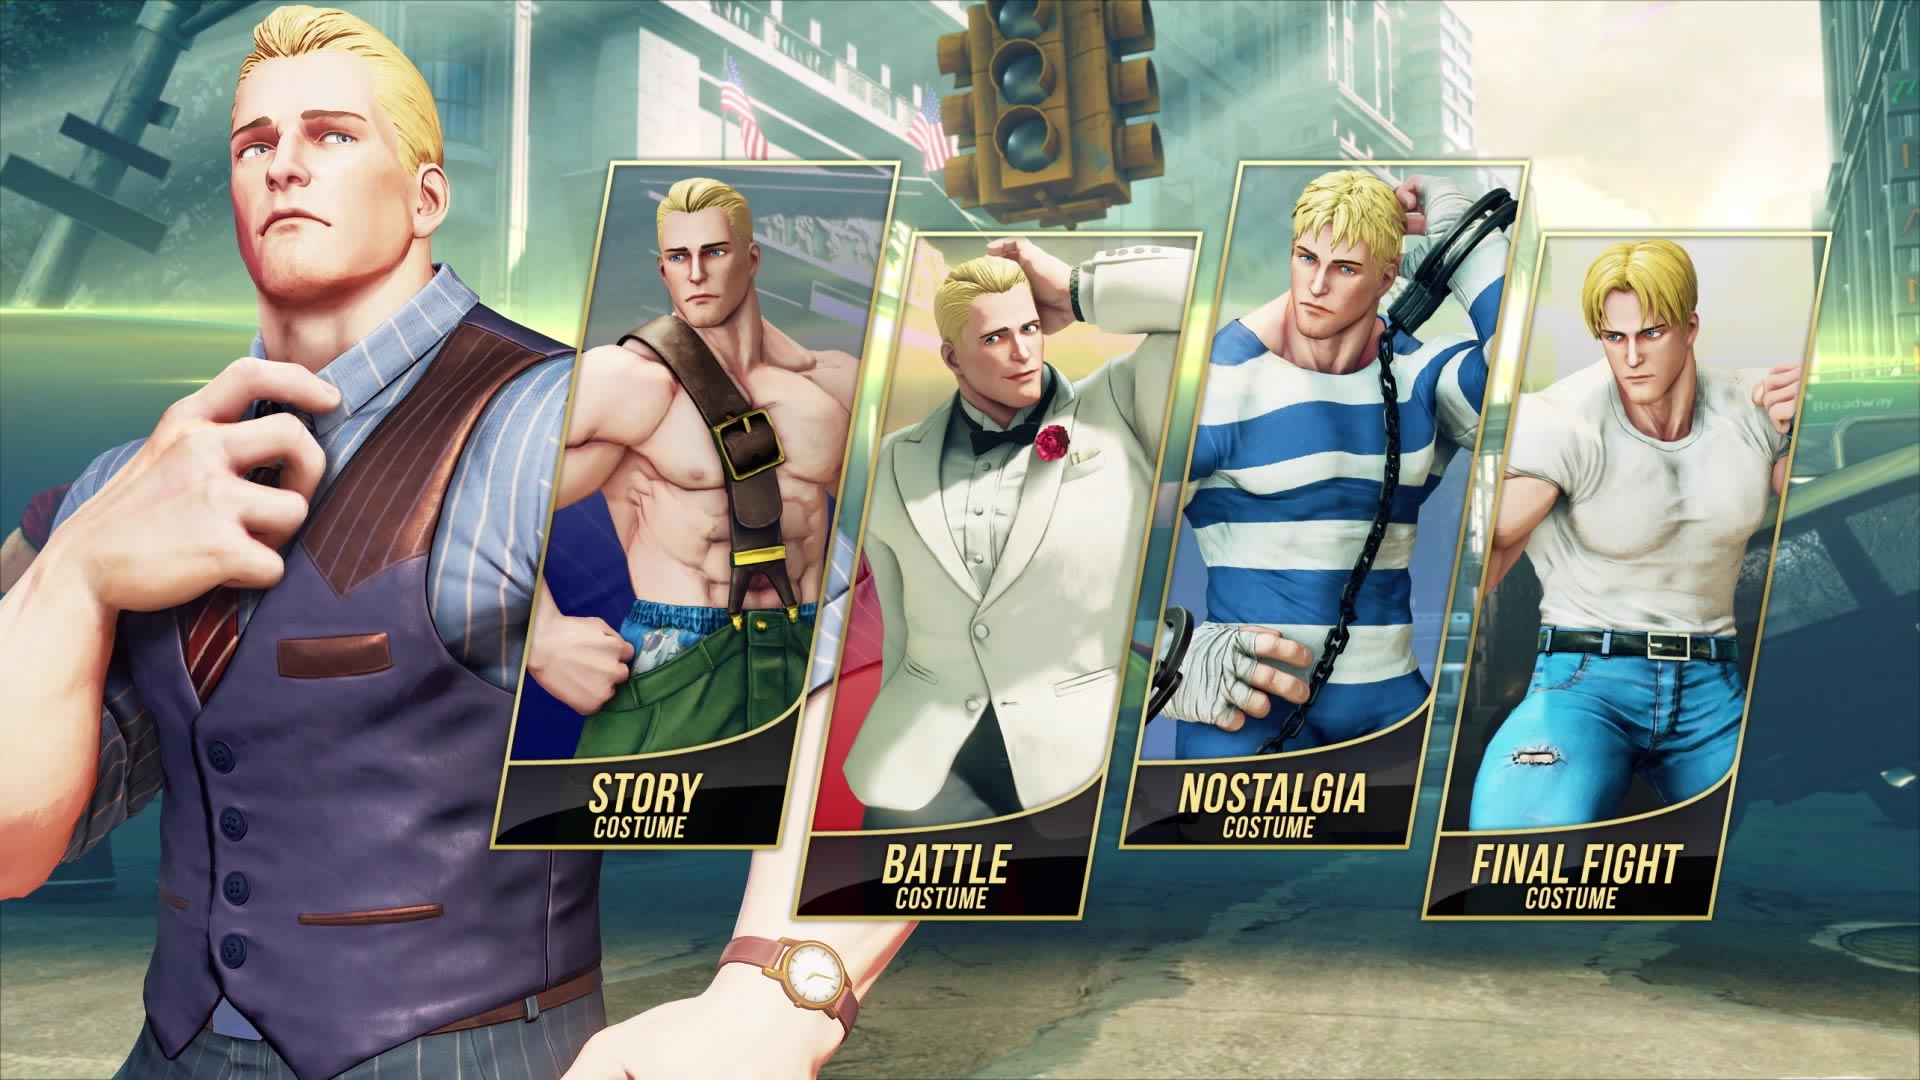 Cody Street Fighter 5: Arcade Edition reveal 1 out of 9 image gallery